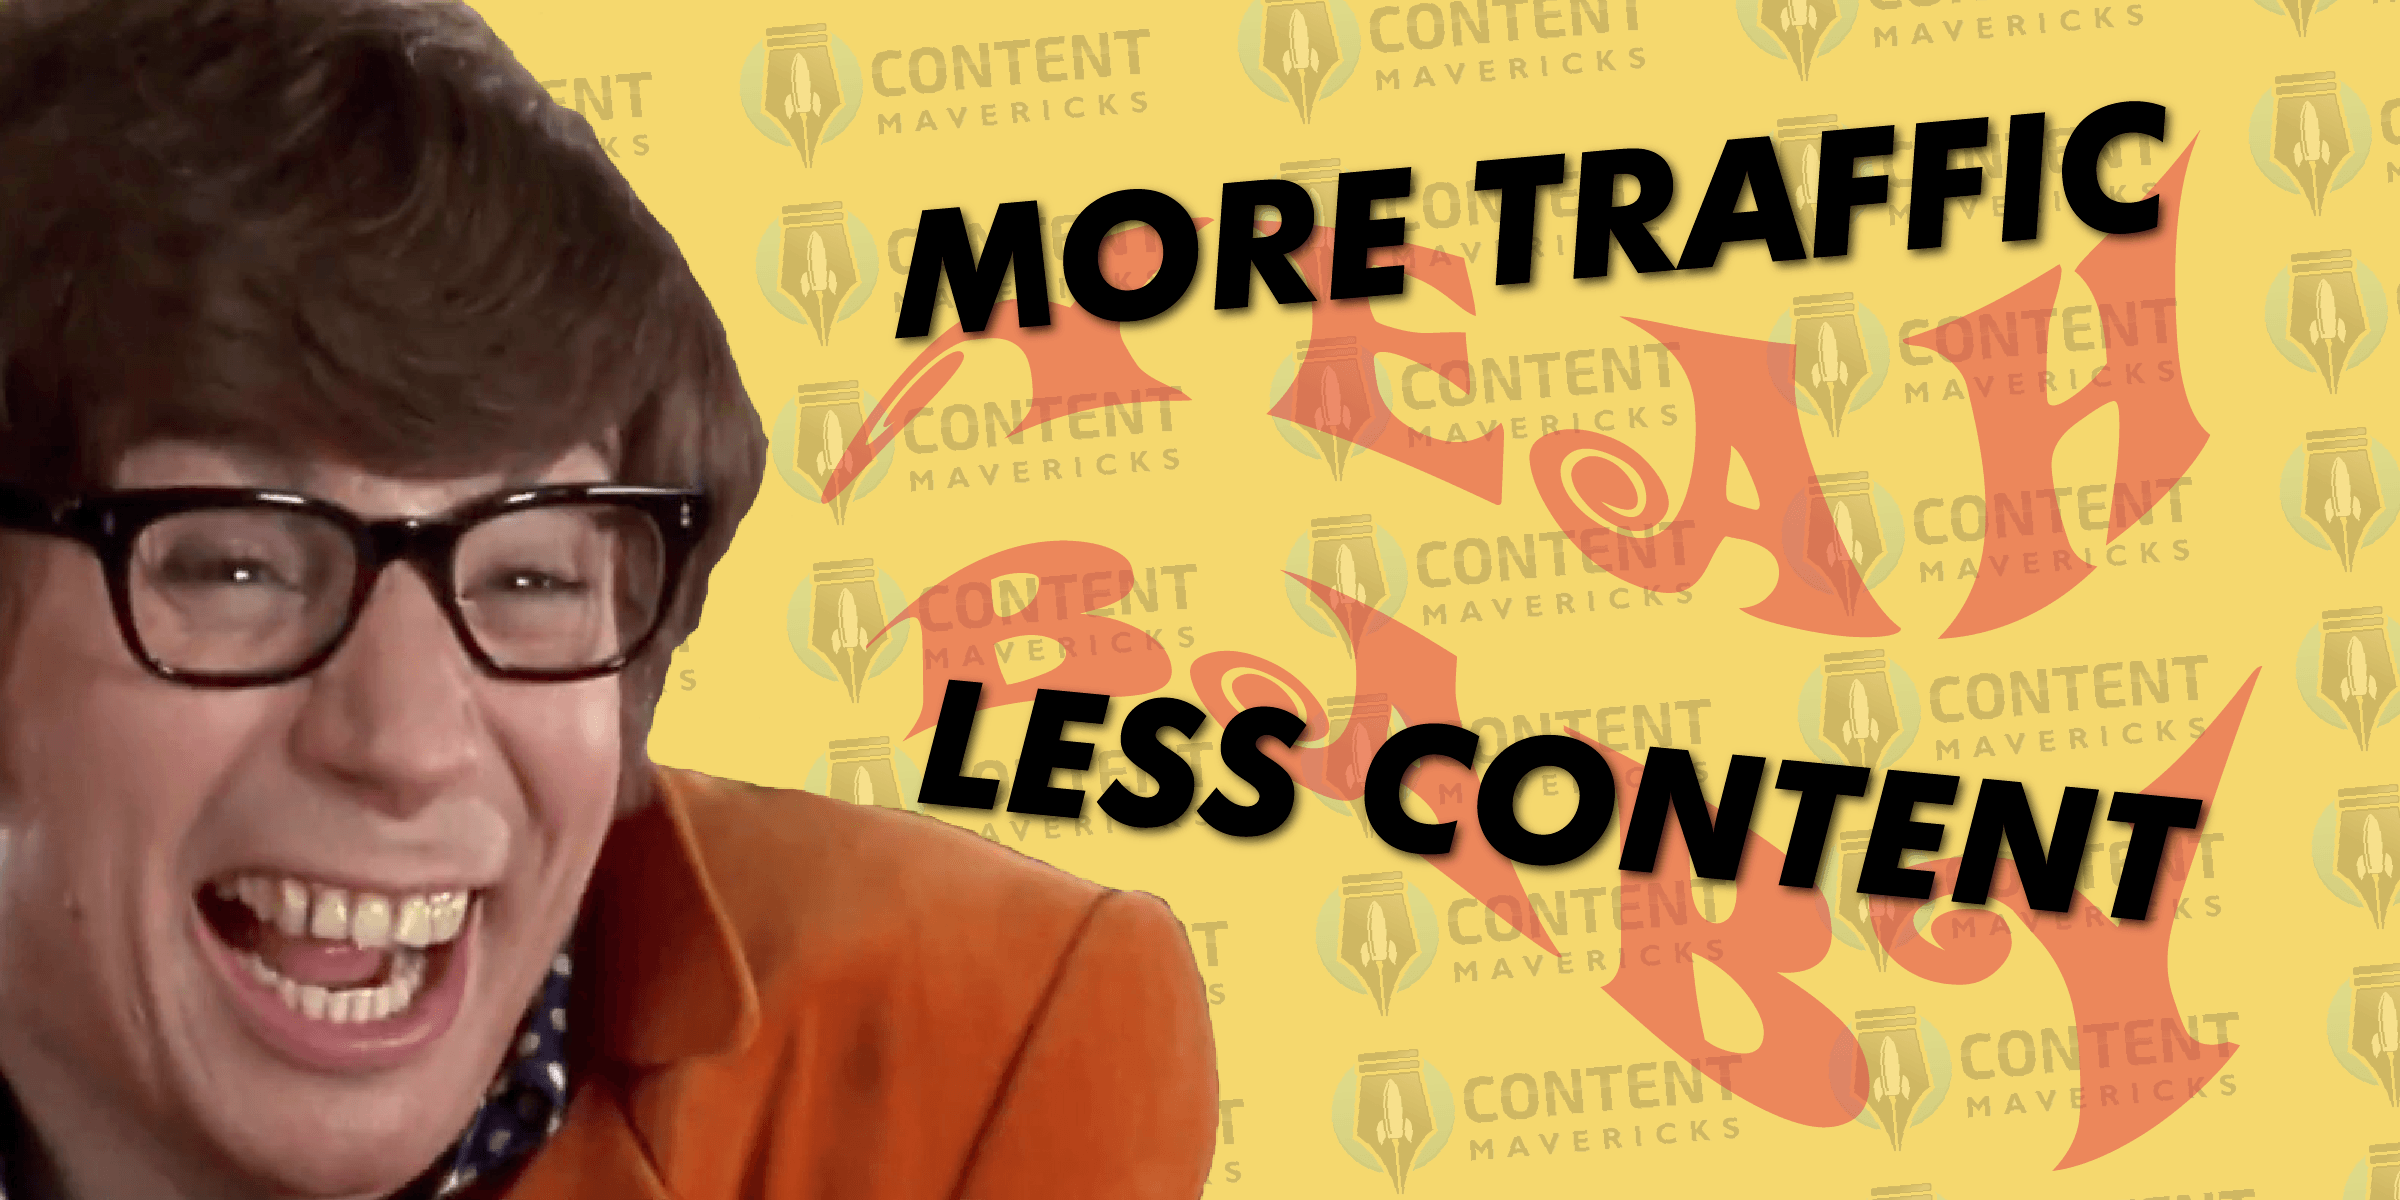 austin powers more traffic less content baby